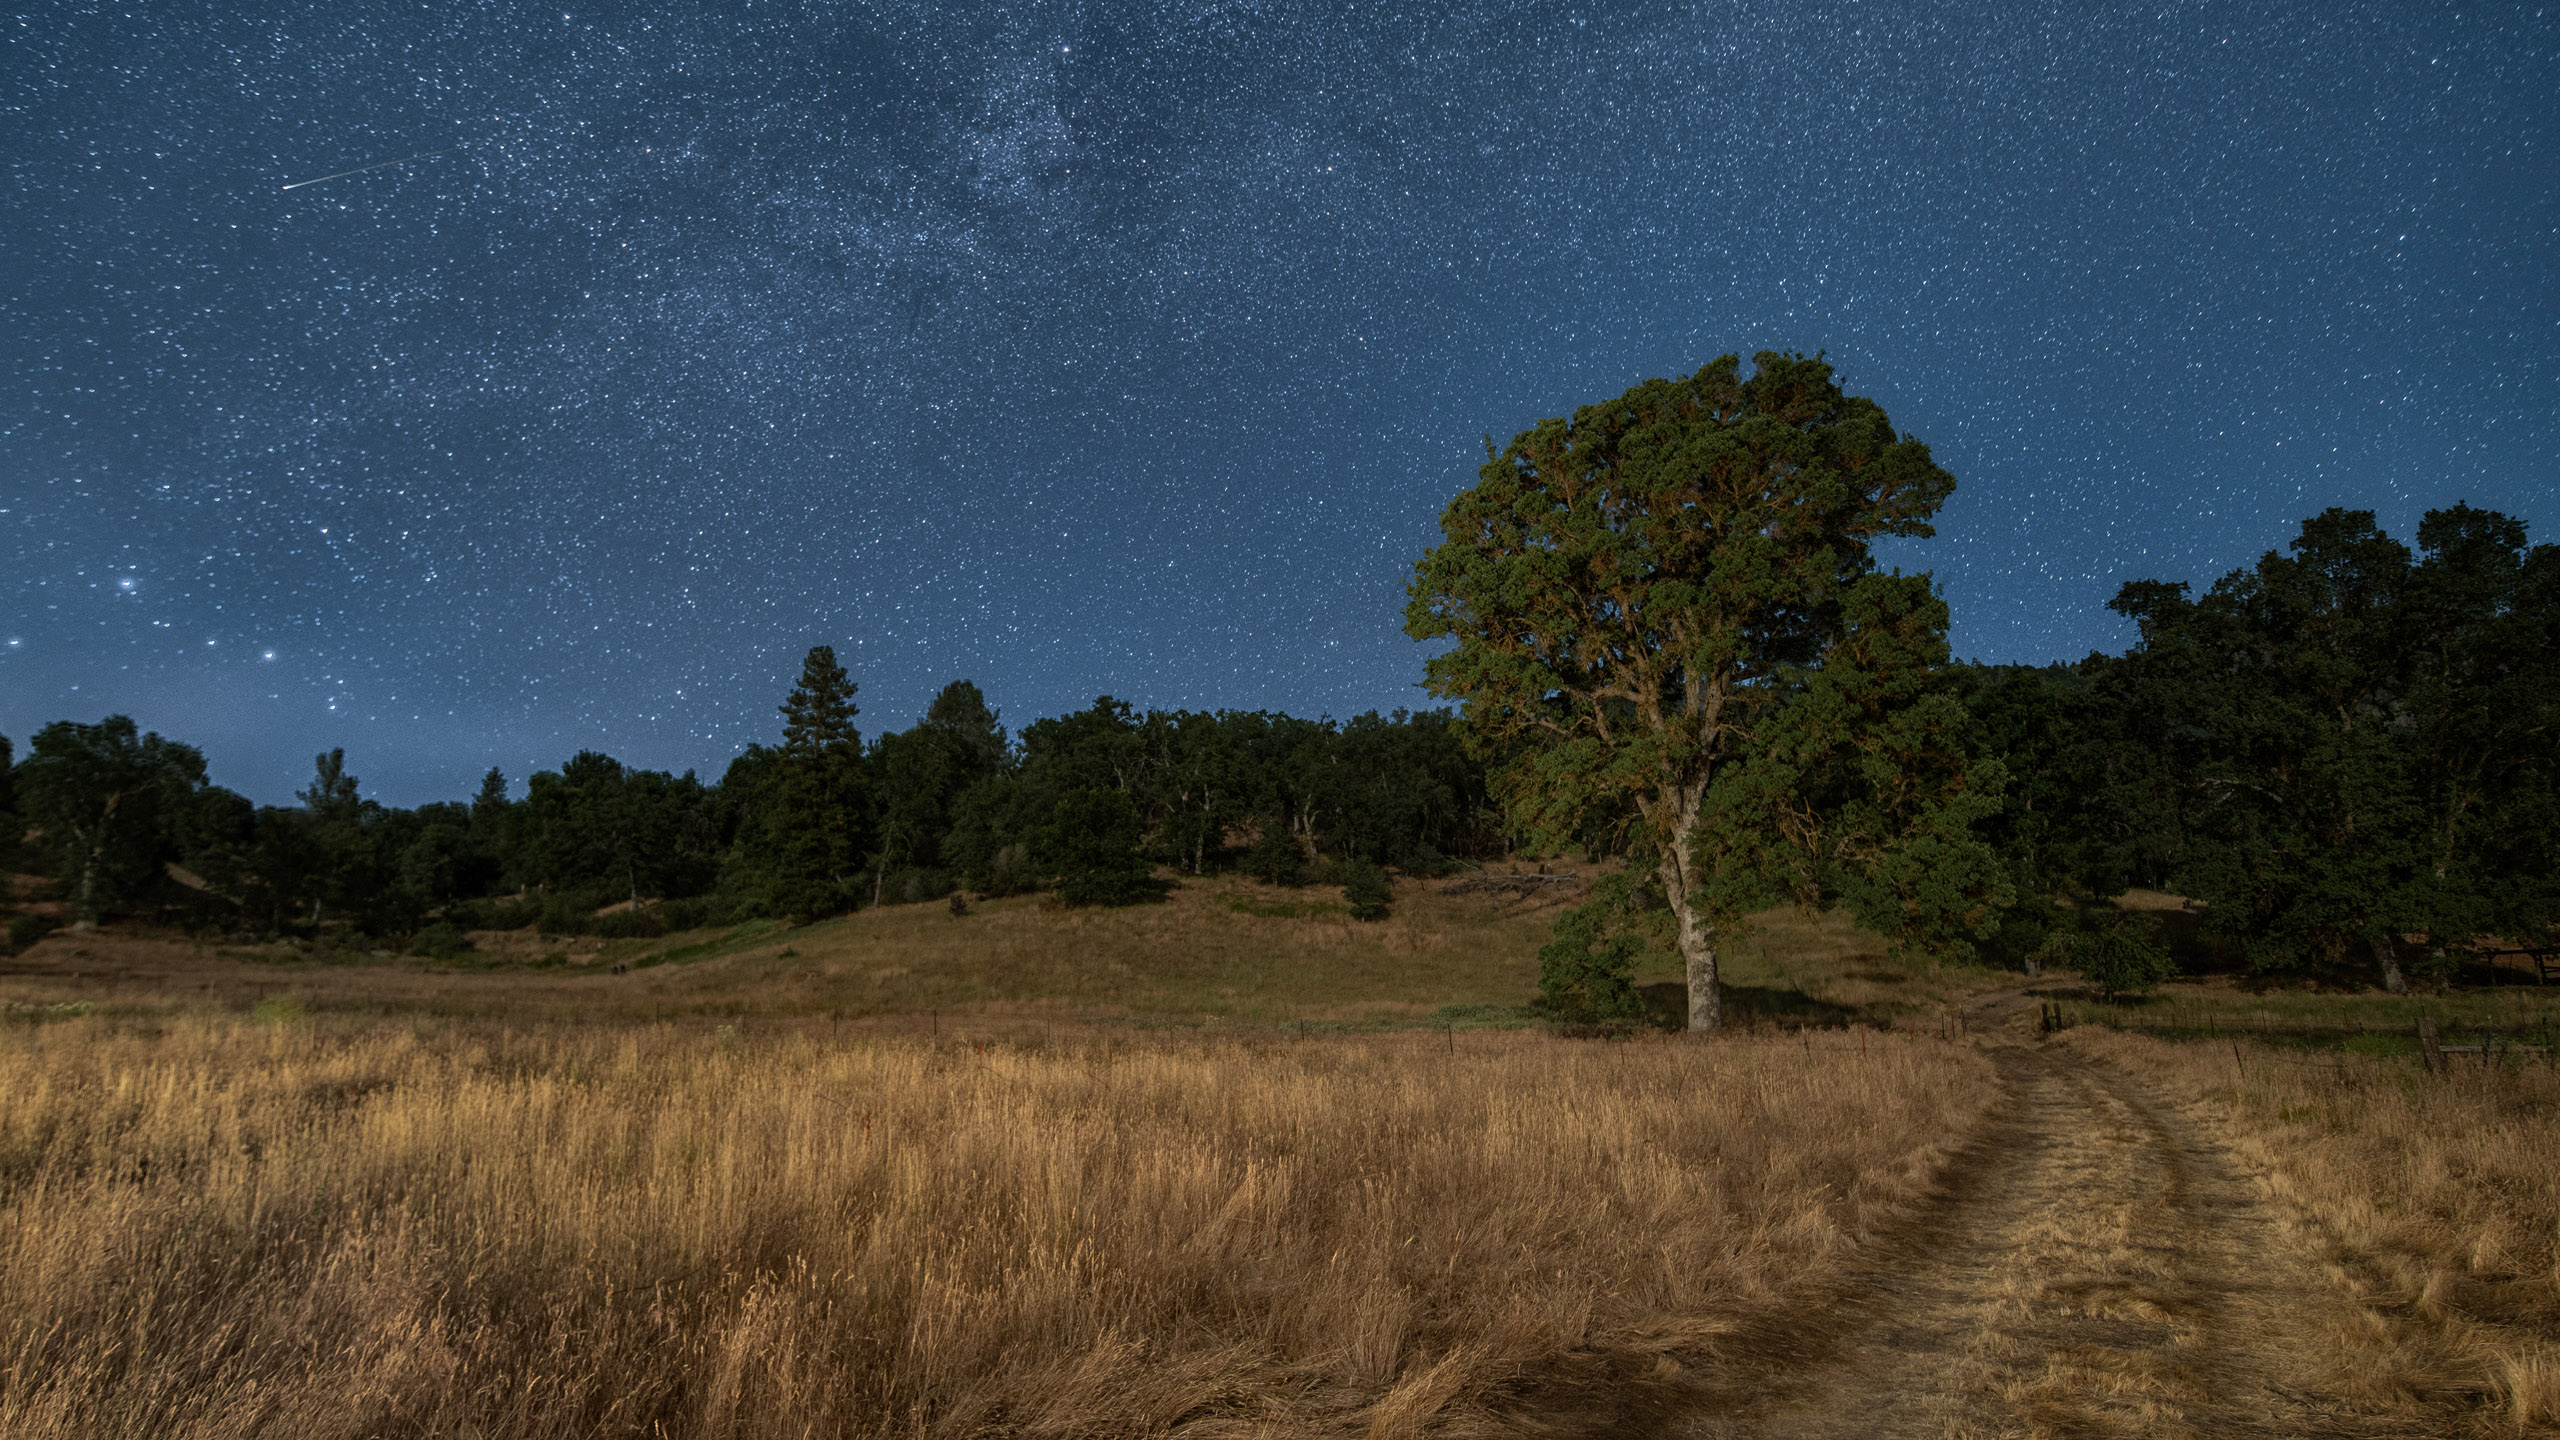 How does Aurora HDR do with a starry night sky?